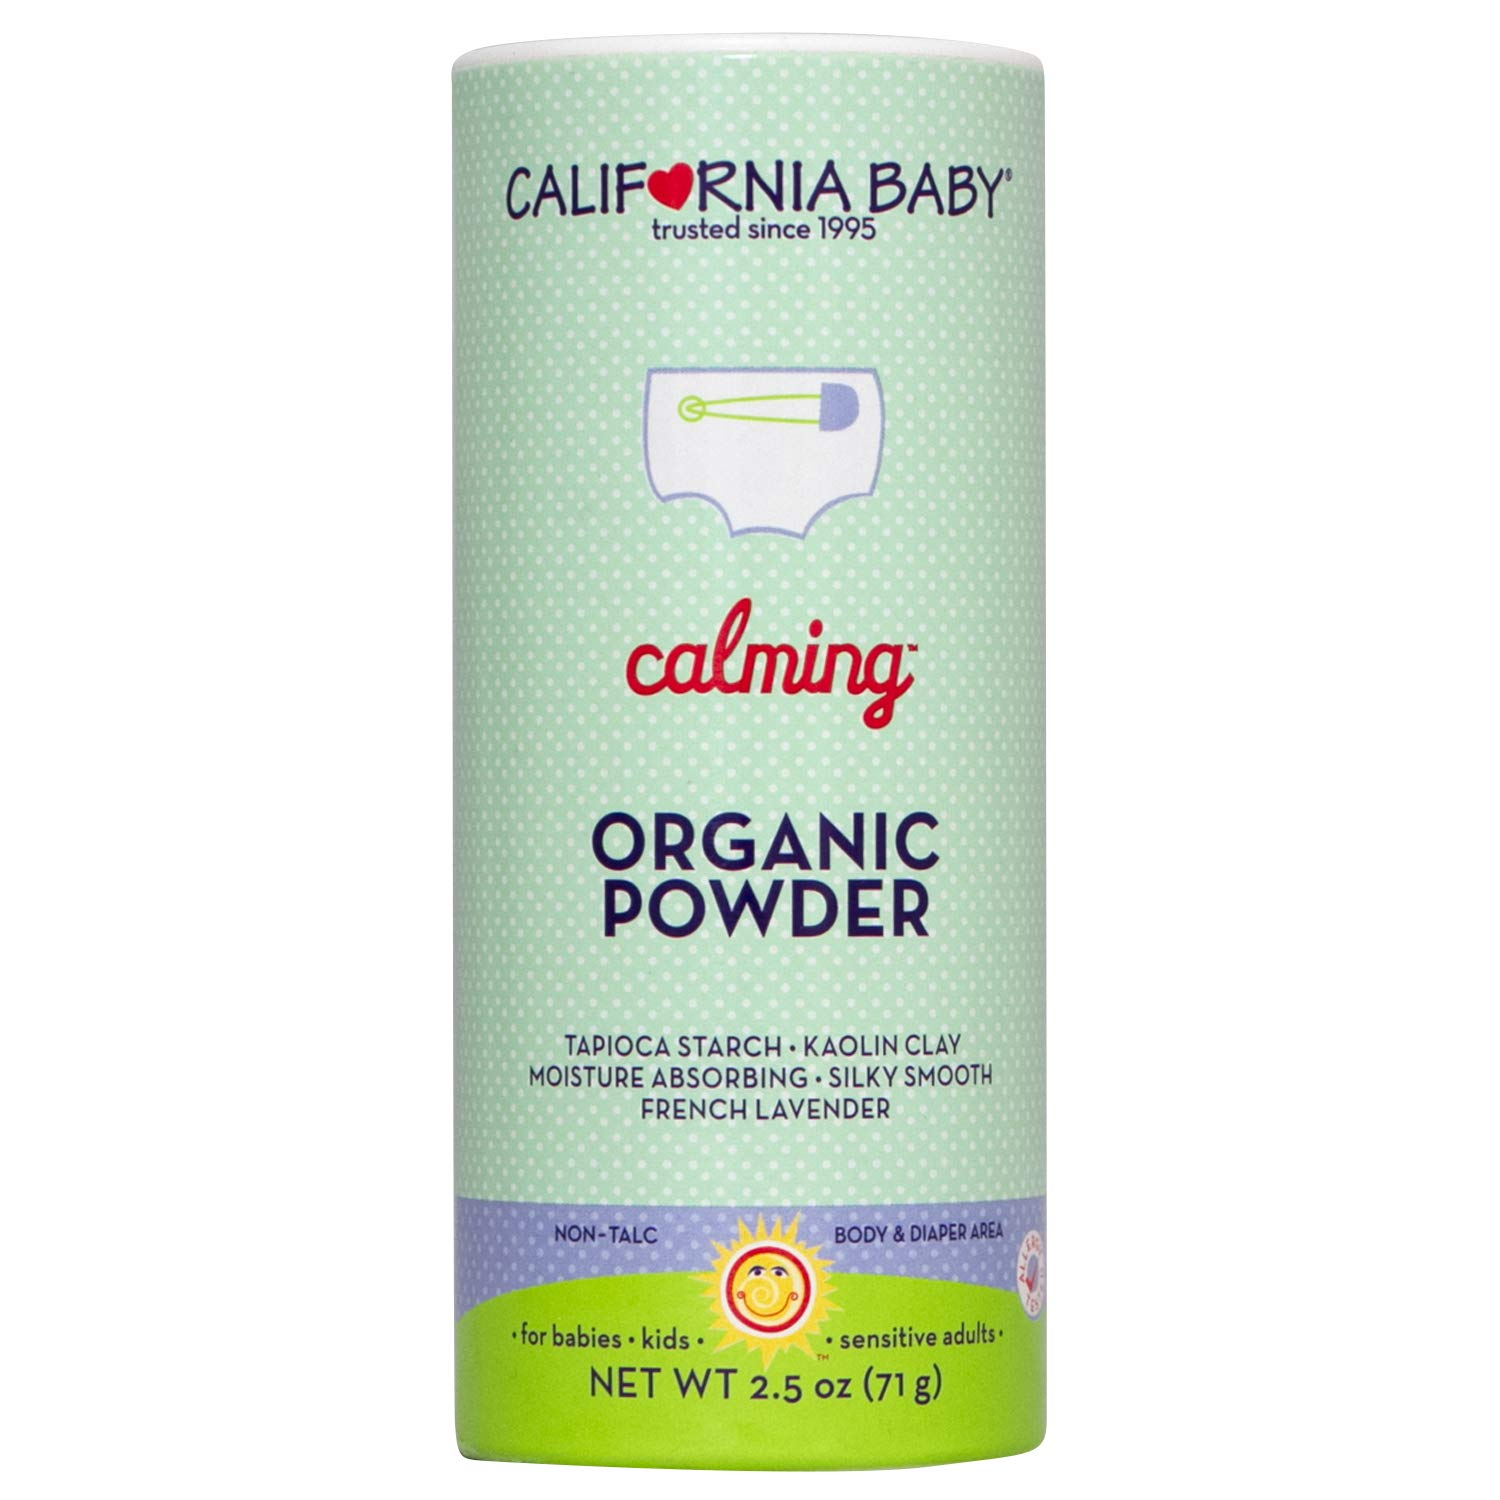 California Baby Calming Organic Powder | Non-Talc | All-Natural Calming Powder | Ideal for Body and Diaper Area | Soothing and Comfortable | Moisture Absorbing Tapioca and Lavender Formula | 2.5oz by California Baby